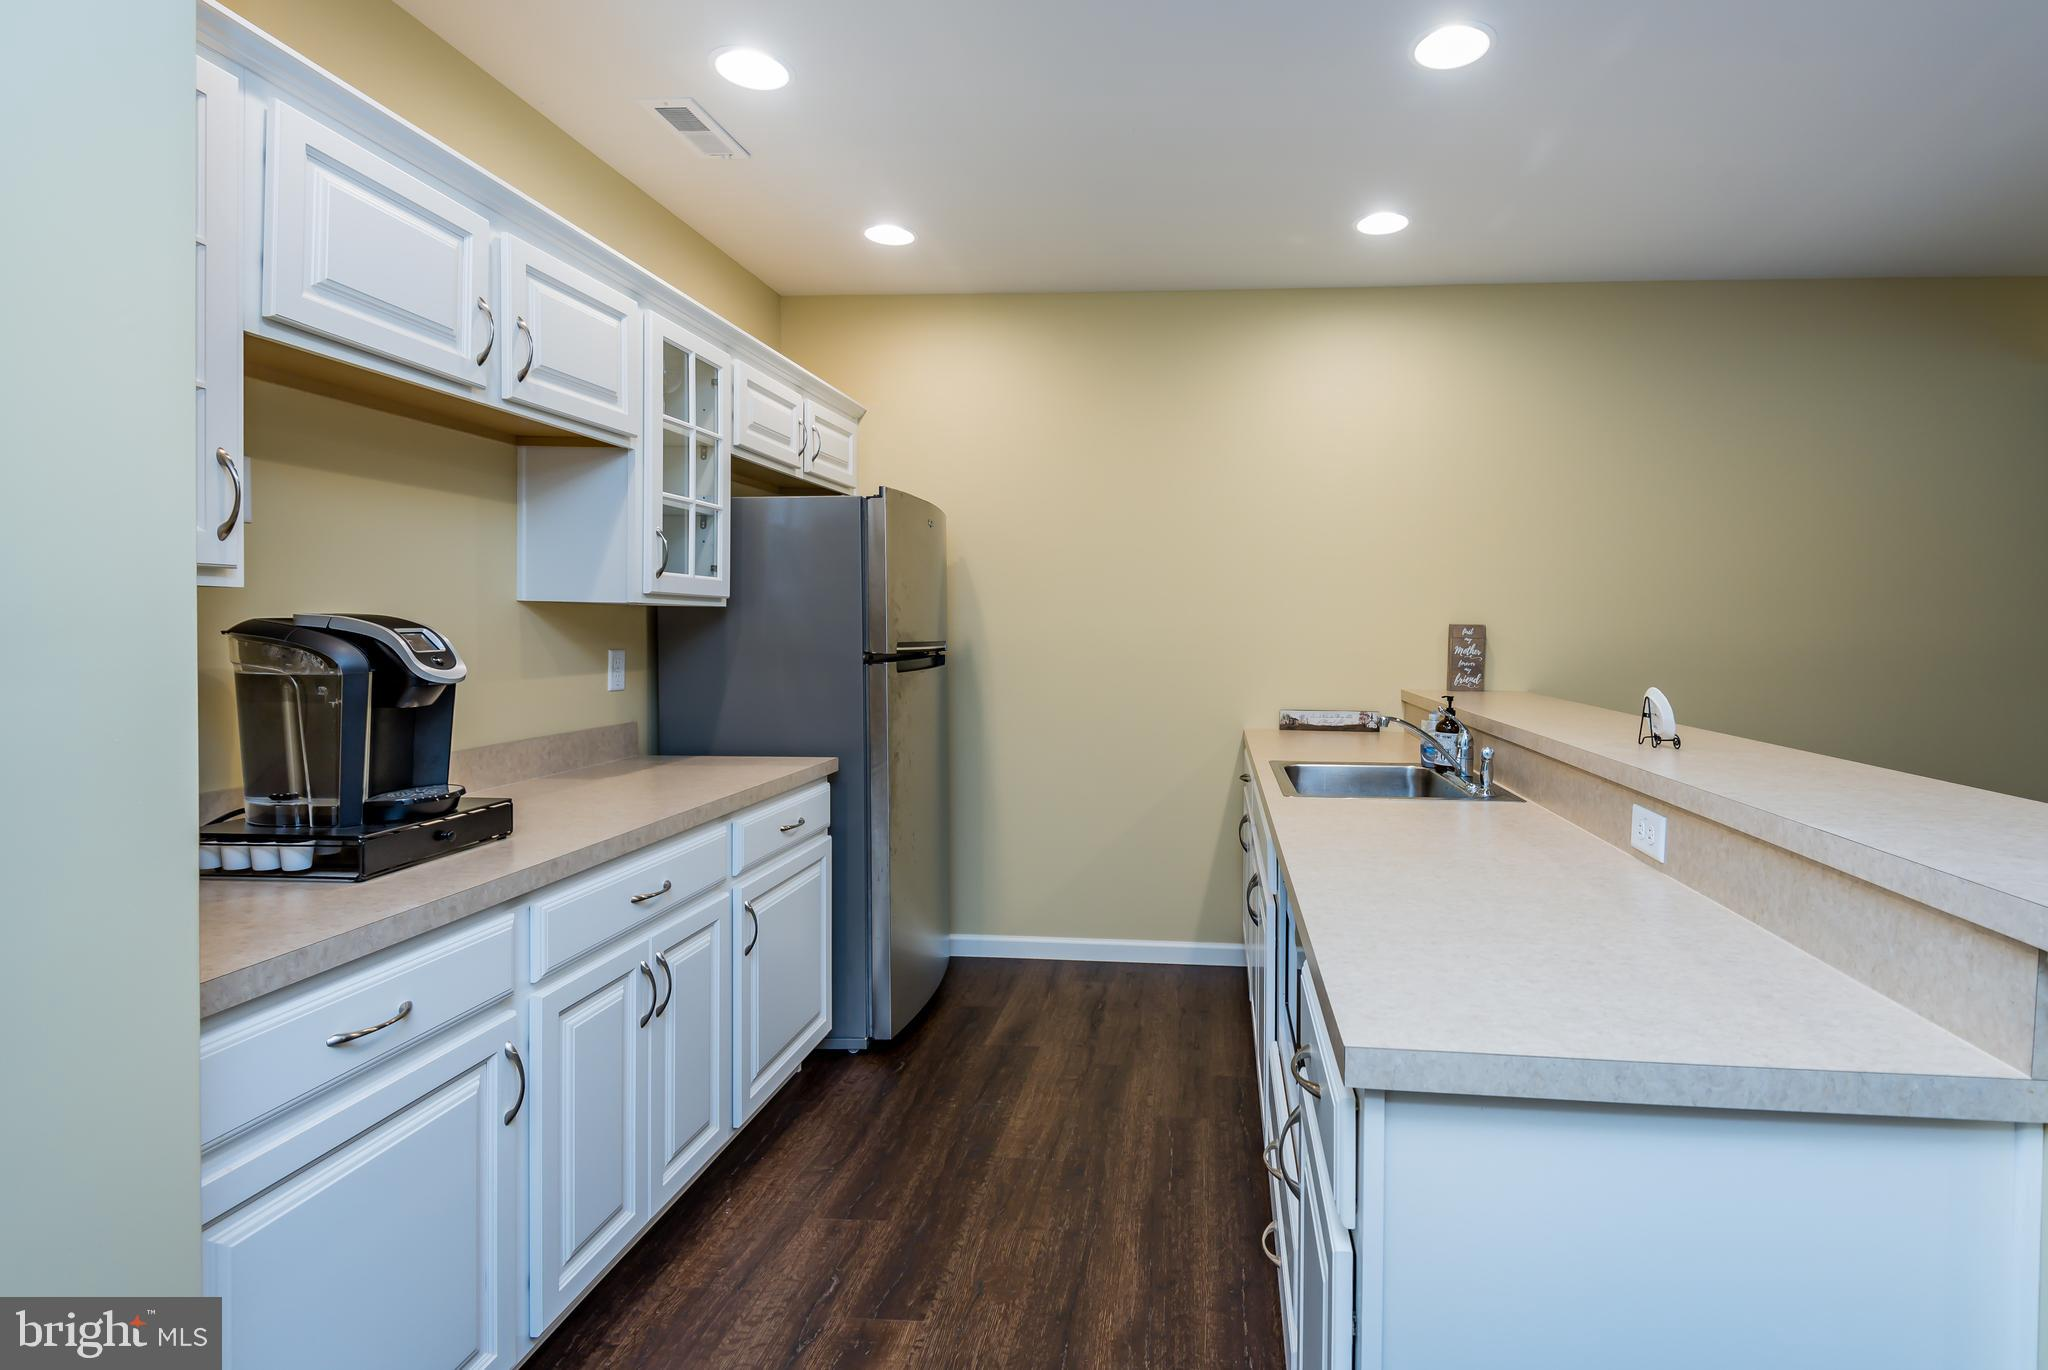 Kitchenette/Cafe in Lower Level